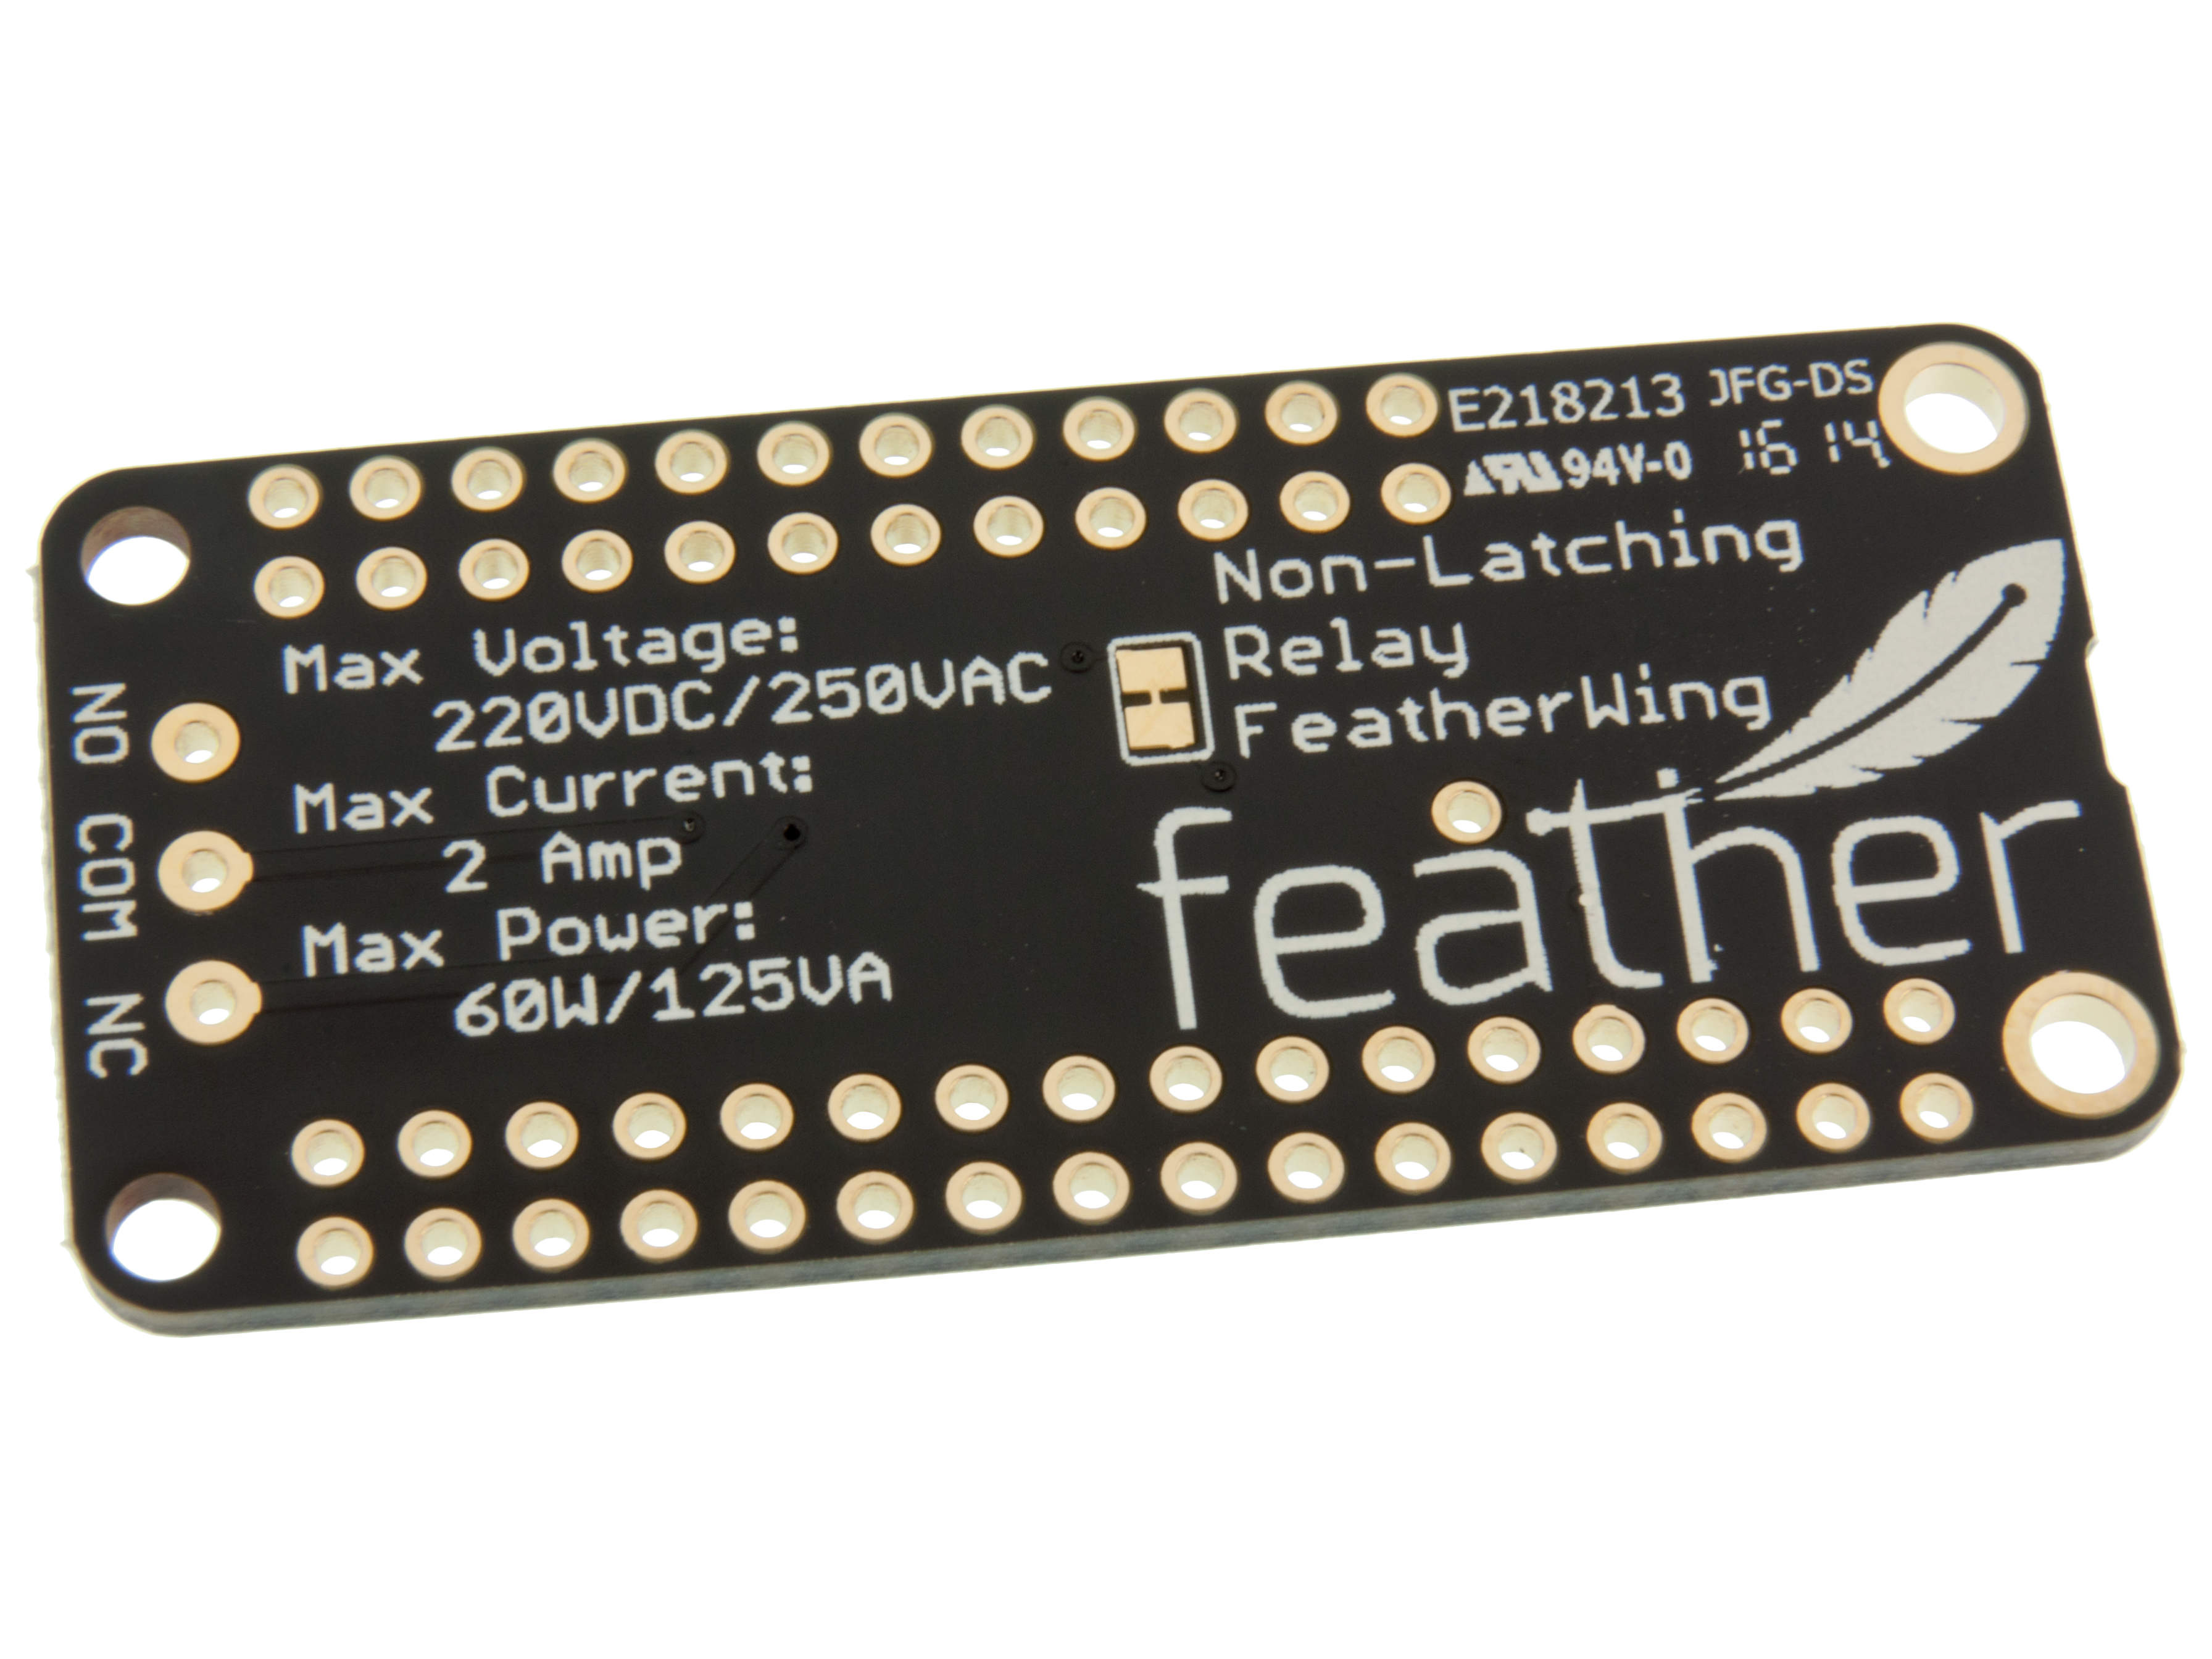 Buy Non Latching Mini Relay Featherwing At The Right Price Electrokit Power Home